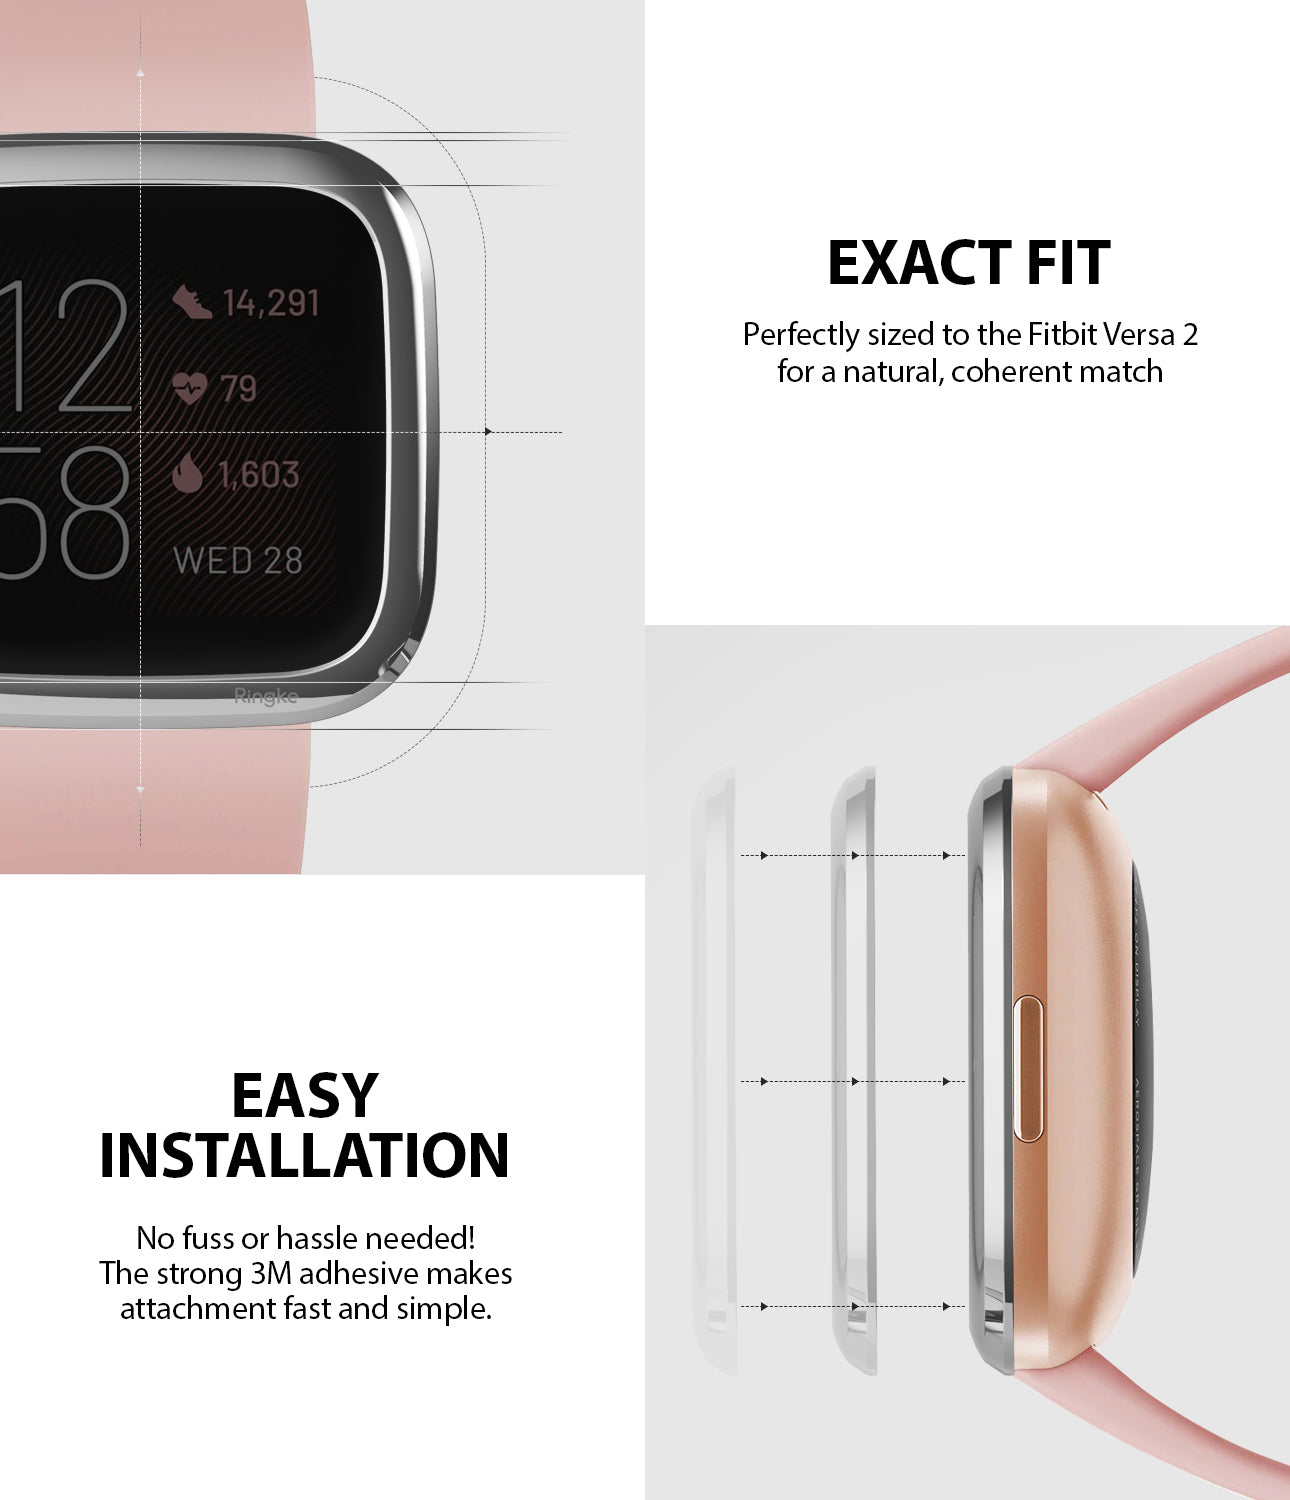 Ringke Bezel Styling Fitbit Versa 2, Full Stainless Steel Frame, Glossy Silver, Stainless Steel, 2-01 ST, exact fit